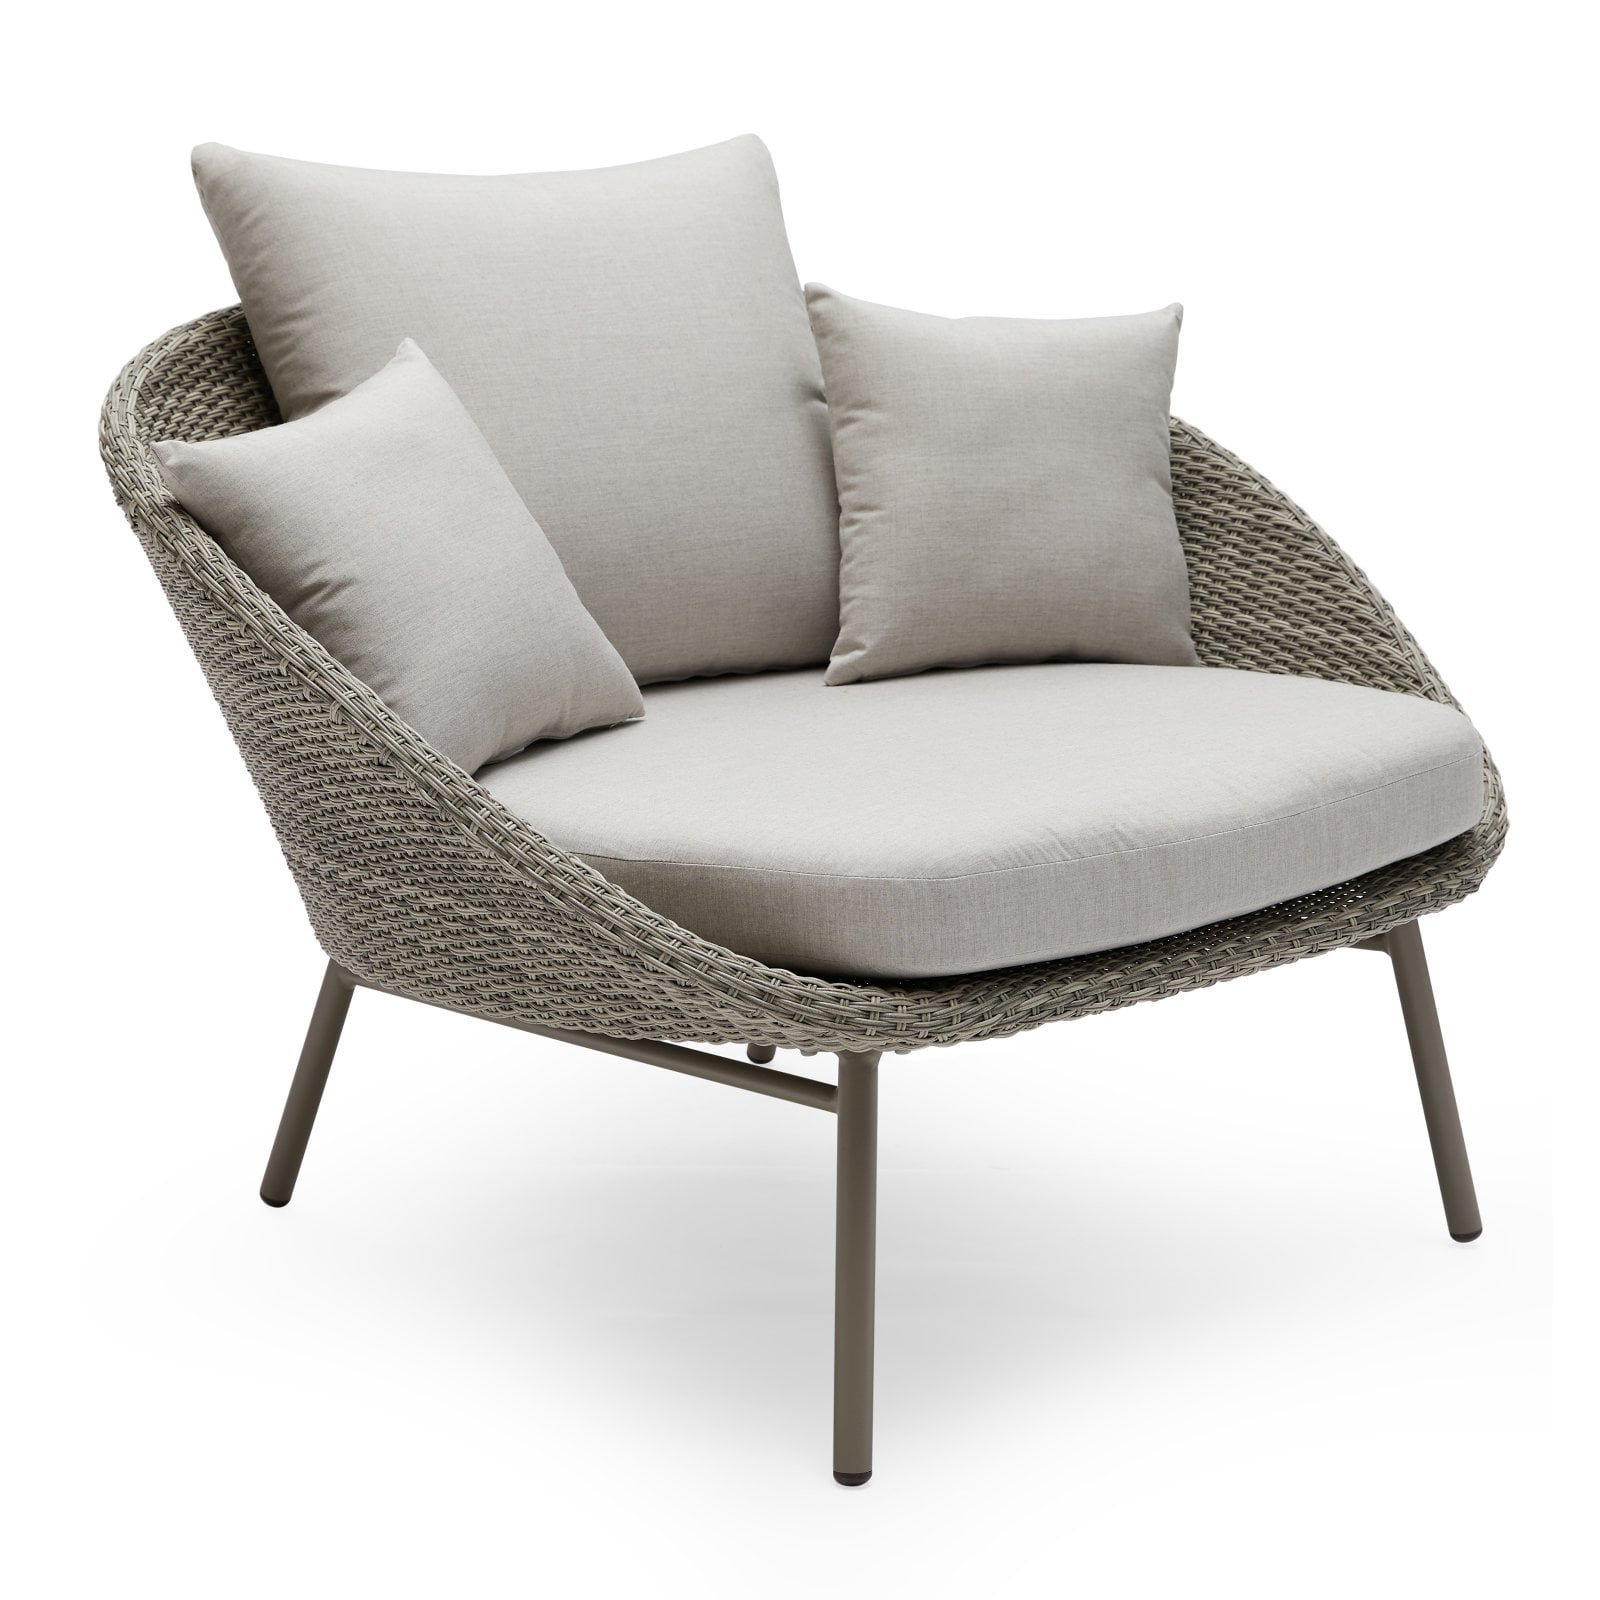 Best Outdoor Furniture For Small Spaces Popsugar Home